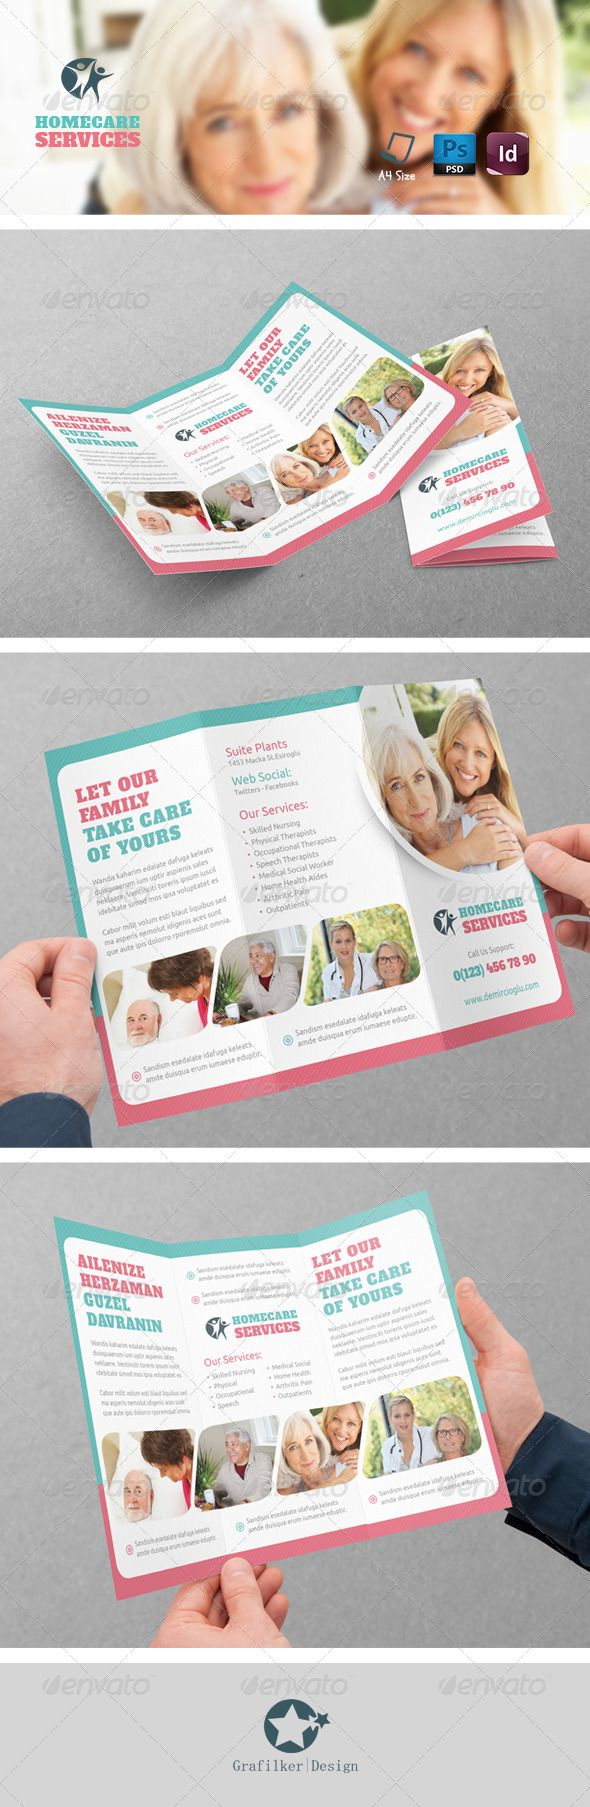 Home Care TriFold Templates Tri Fold Template And Brochures - Home care brochure template